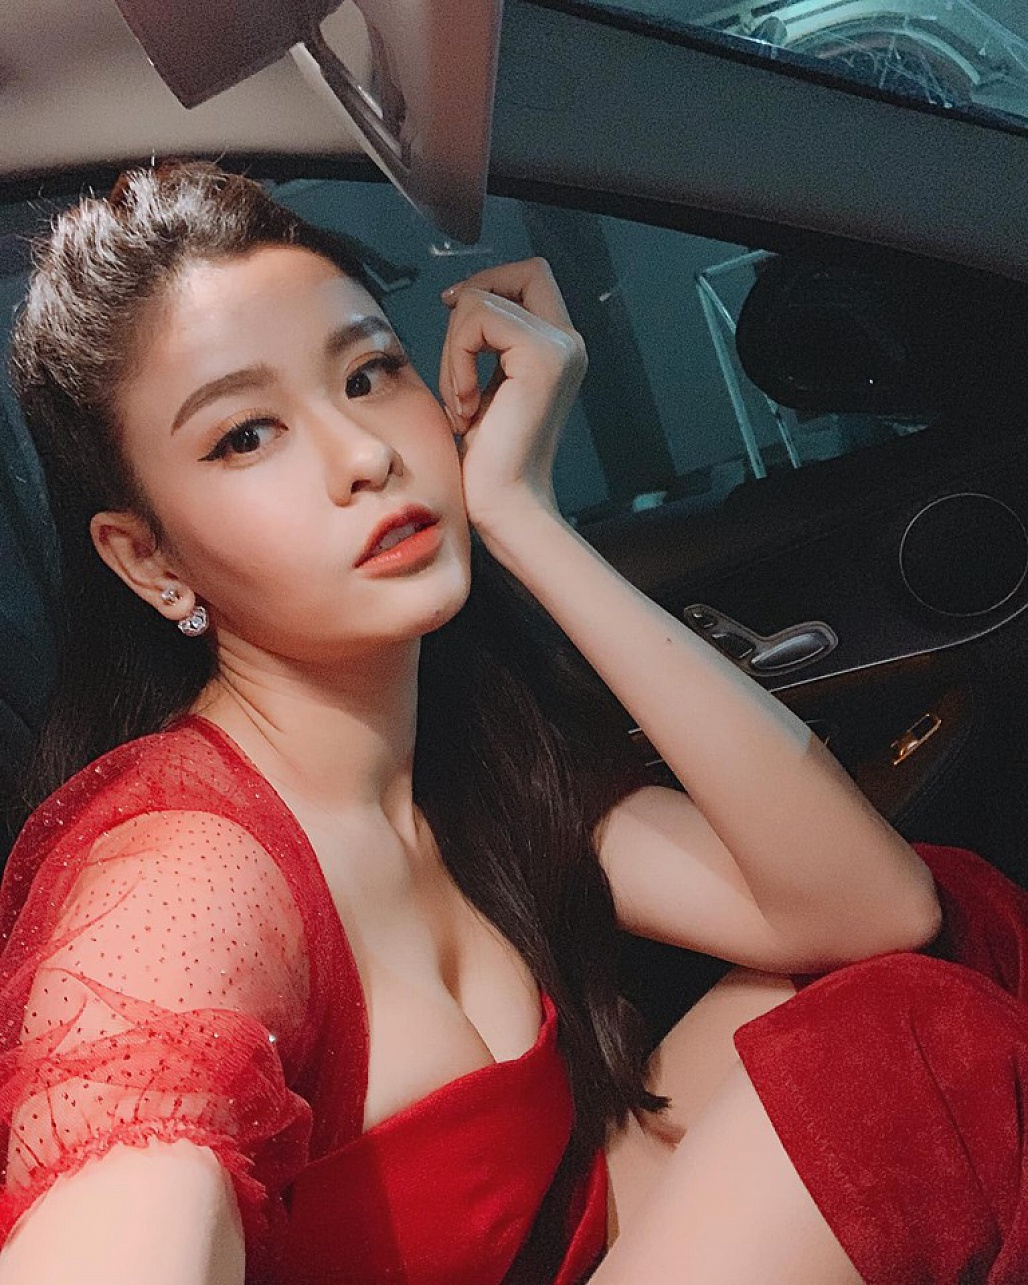 ca si truong quynh anh 1